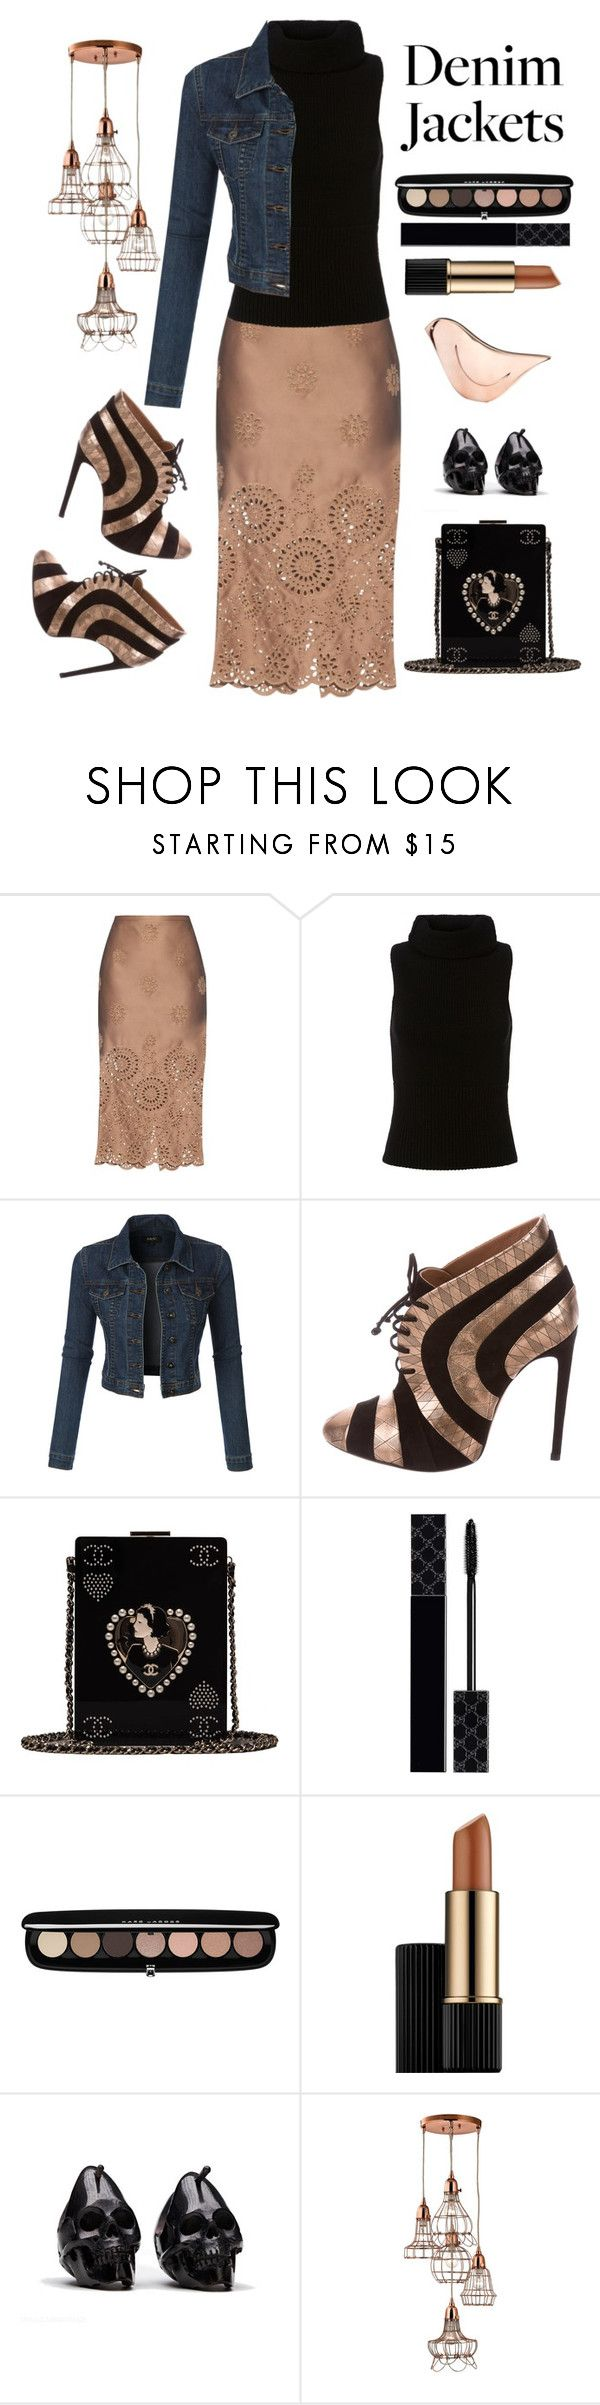 """Metallic and Denim"" by loves-elephants ❤ liked on Polyvore featuring Rochas, Exclusive for Intermix, LE3NO, Chanel, Gucci, Marc Jacobs, Estée Lauder, G1 and Cyan Design"